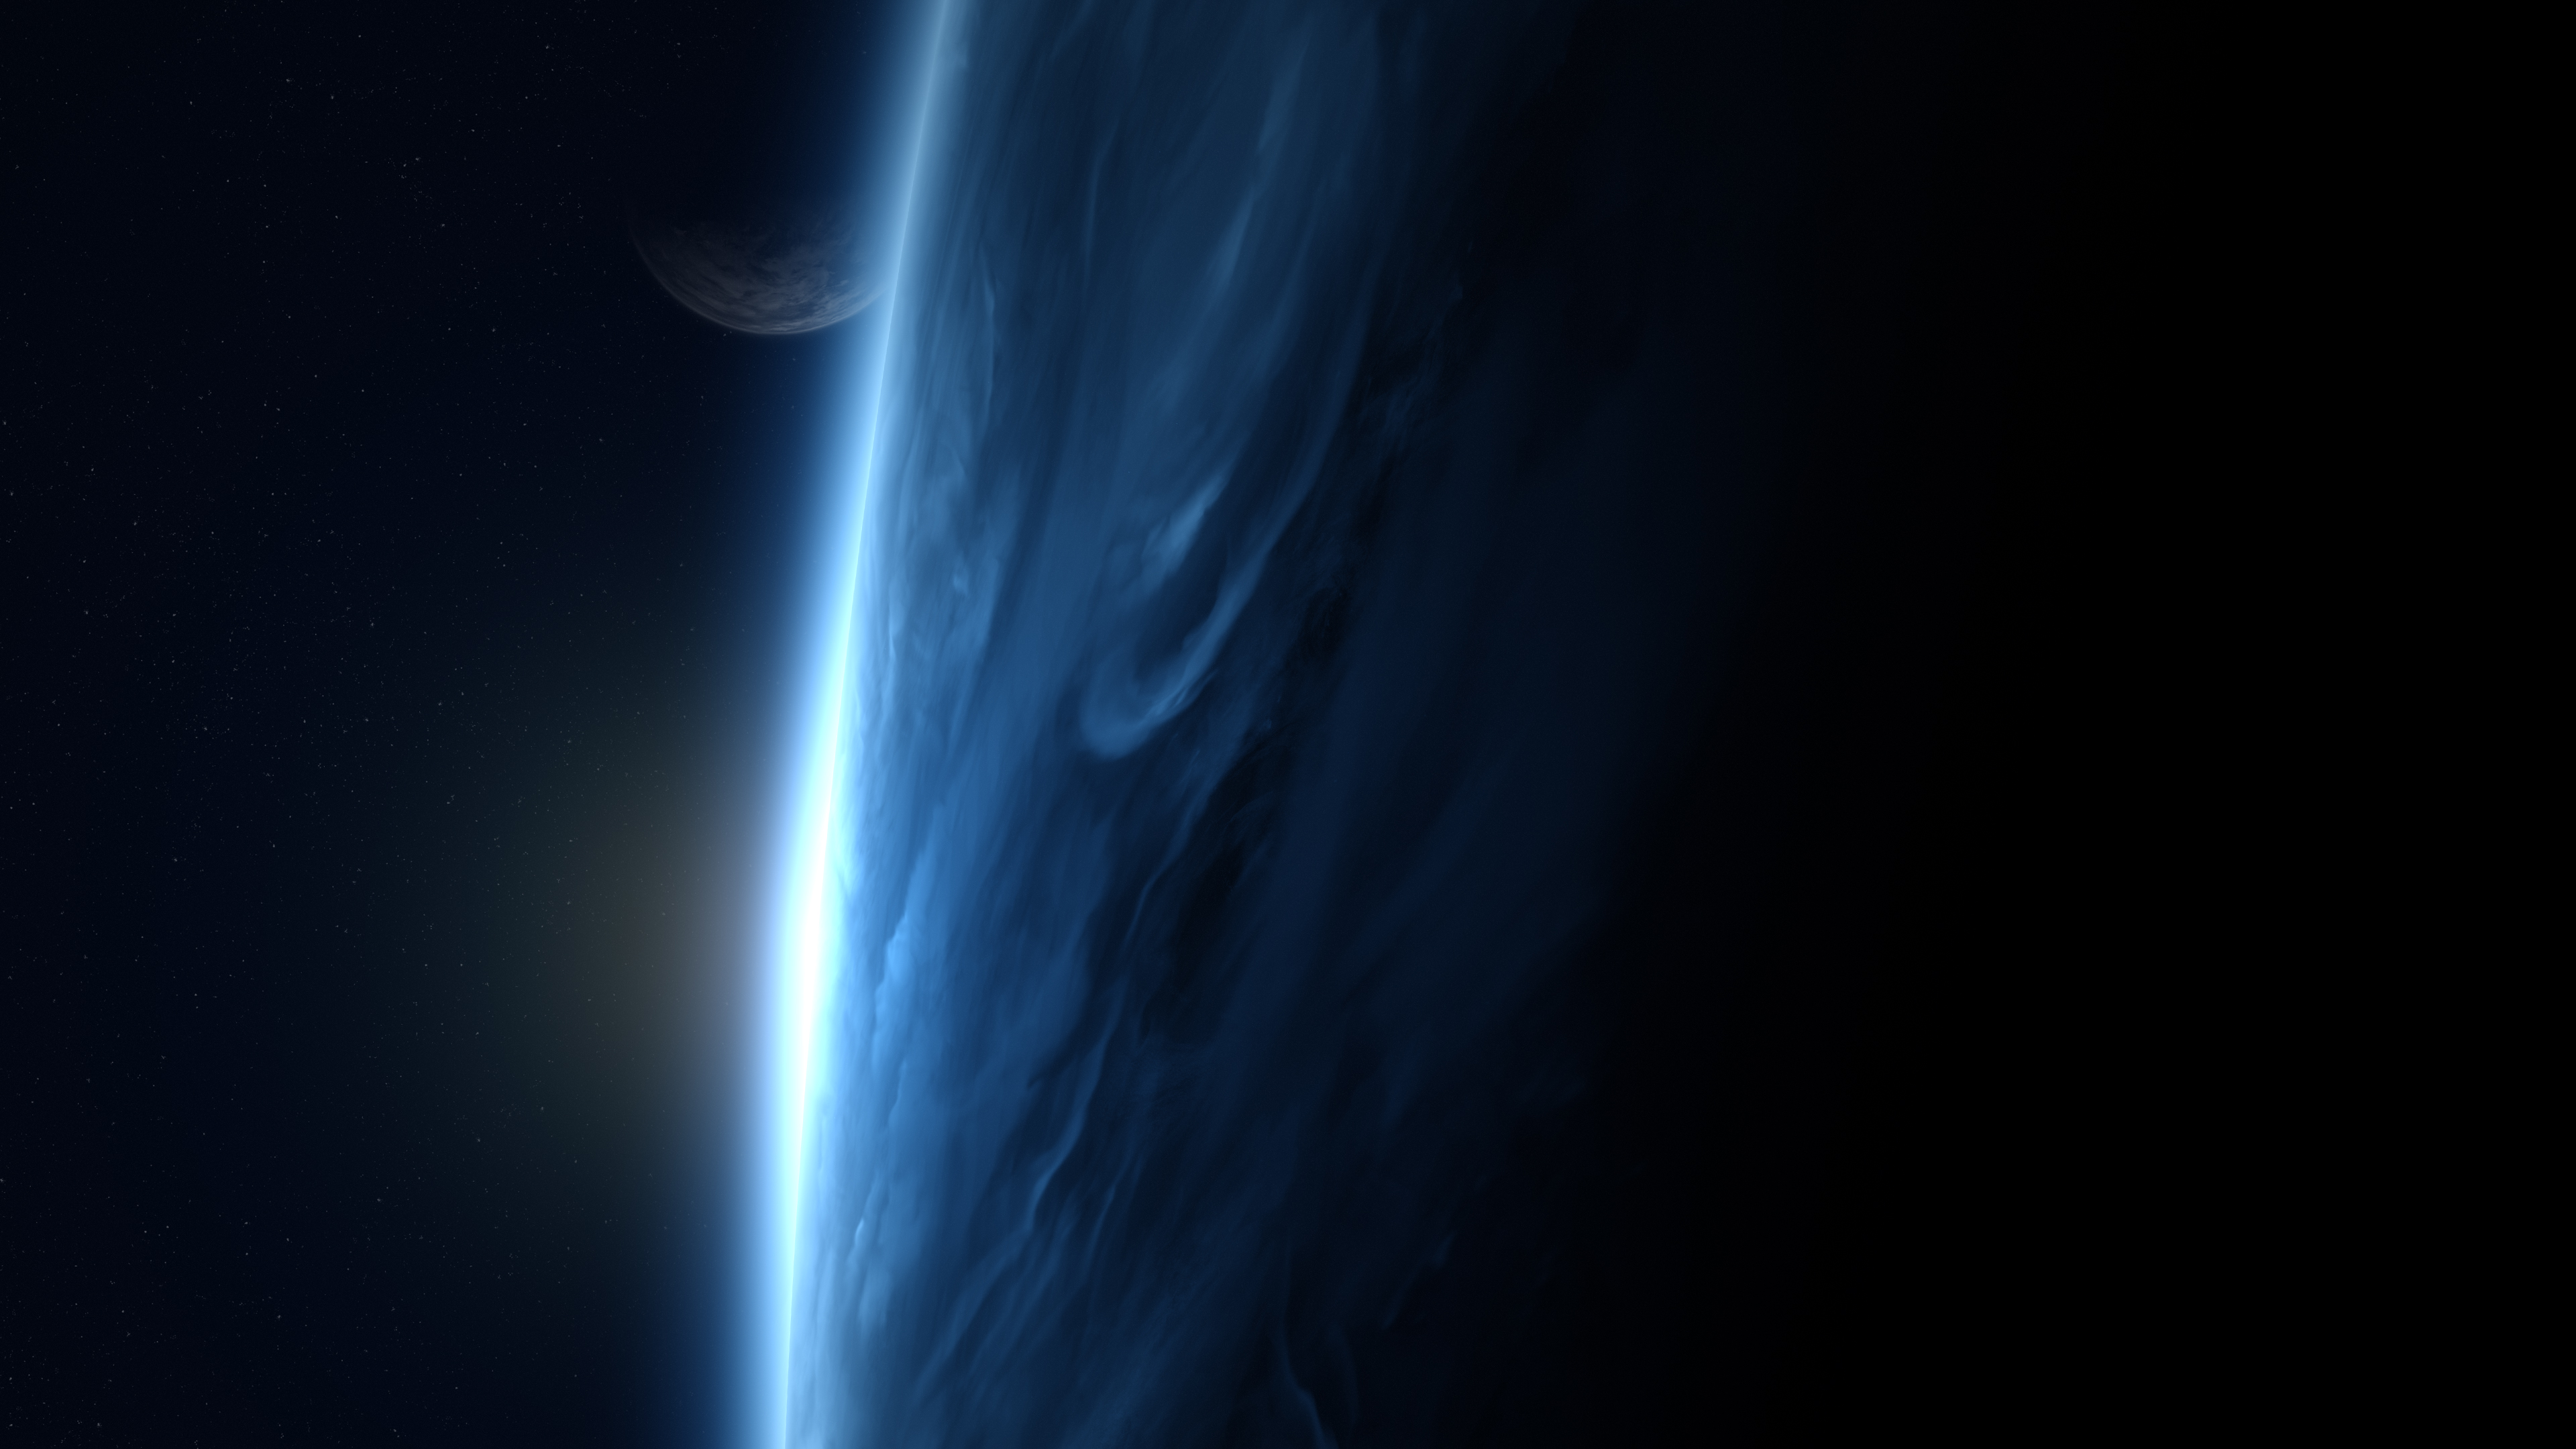 Space Wallpaper Hd Zip